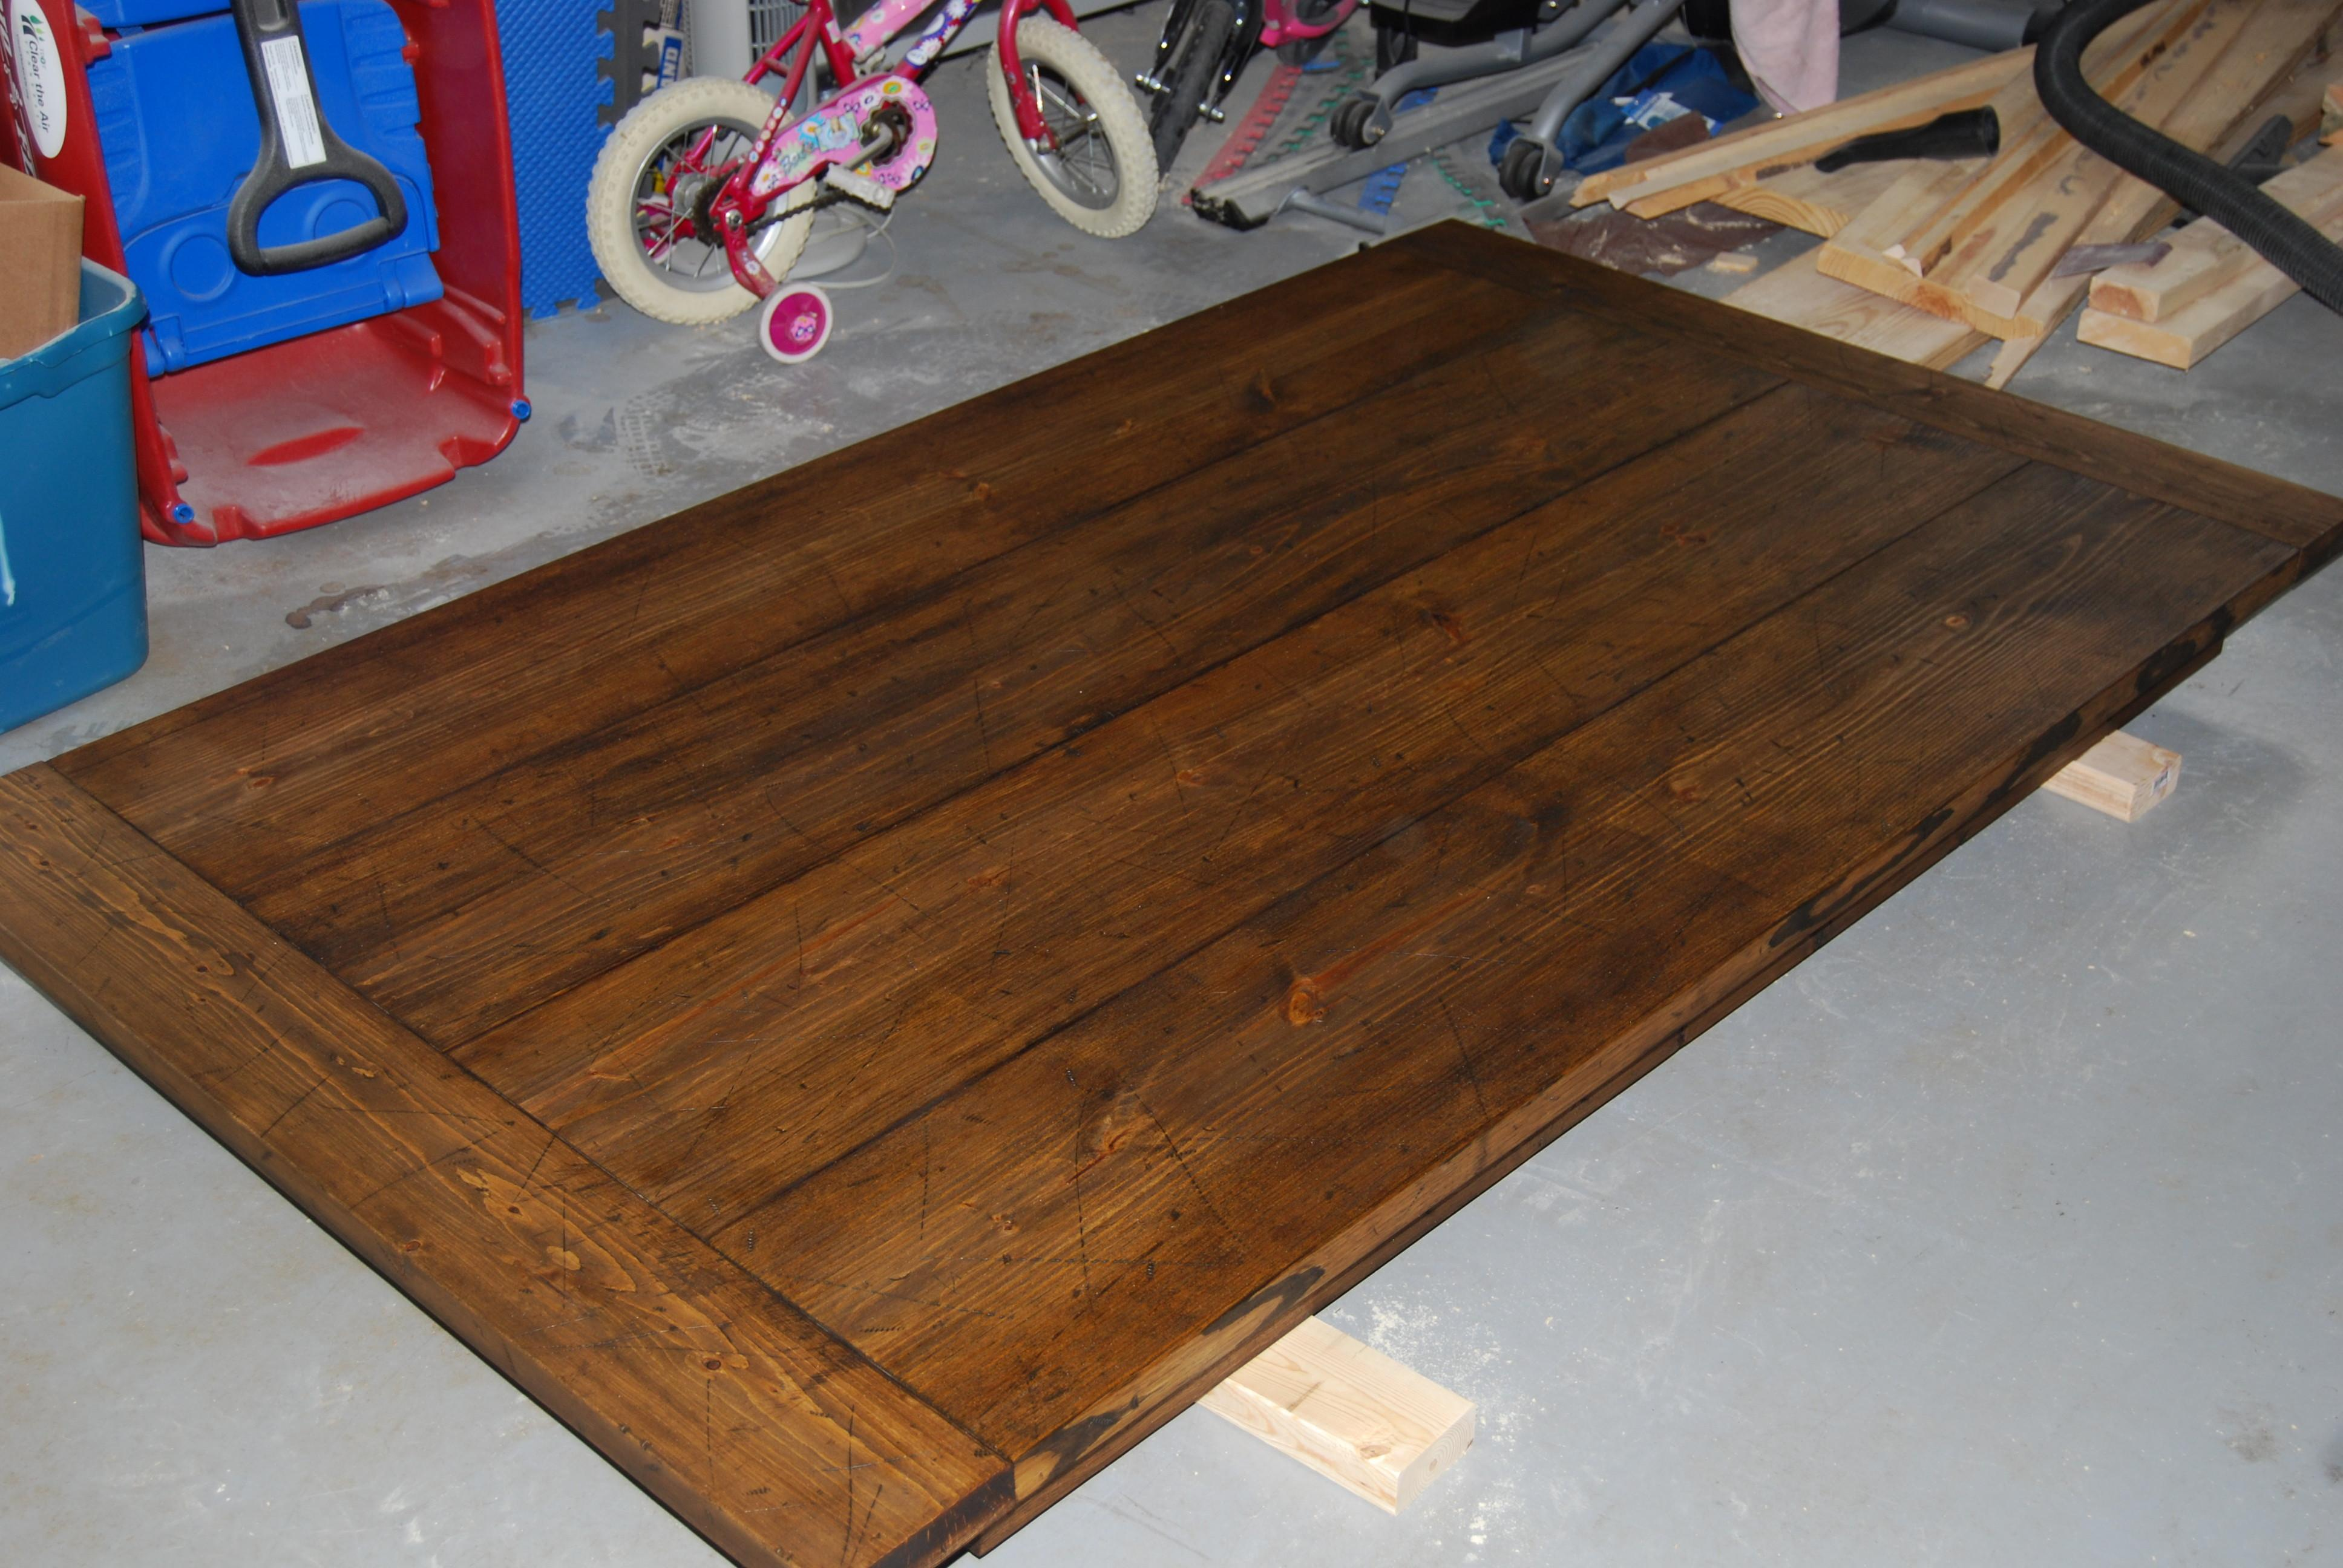 Diy Build Brown Polished Rectangle Recycled Teak Wood Top